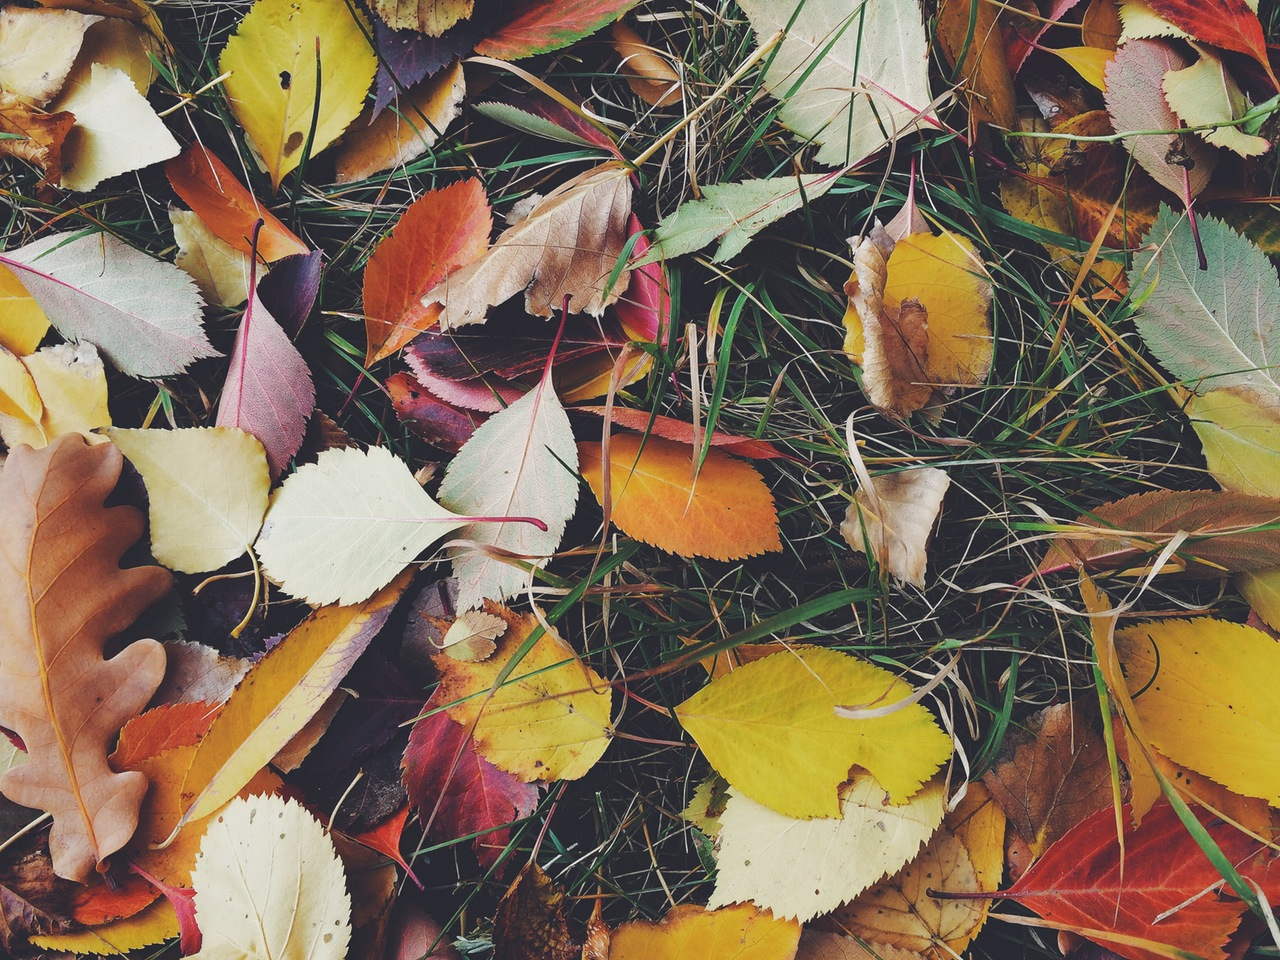 an image of colourful leaves sitting upon grass